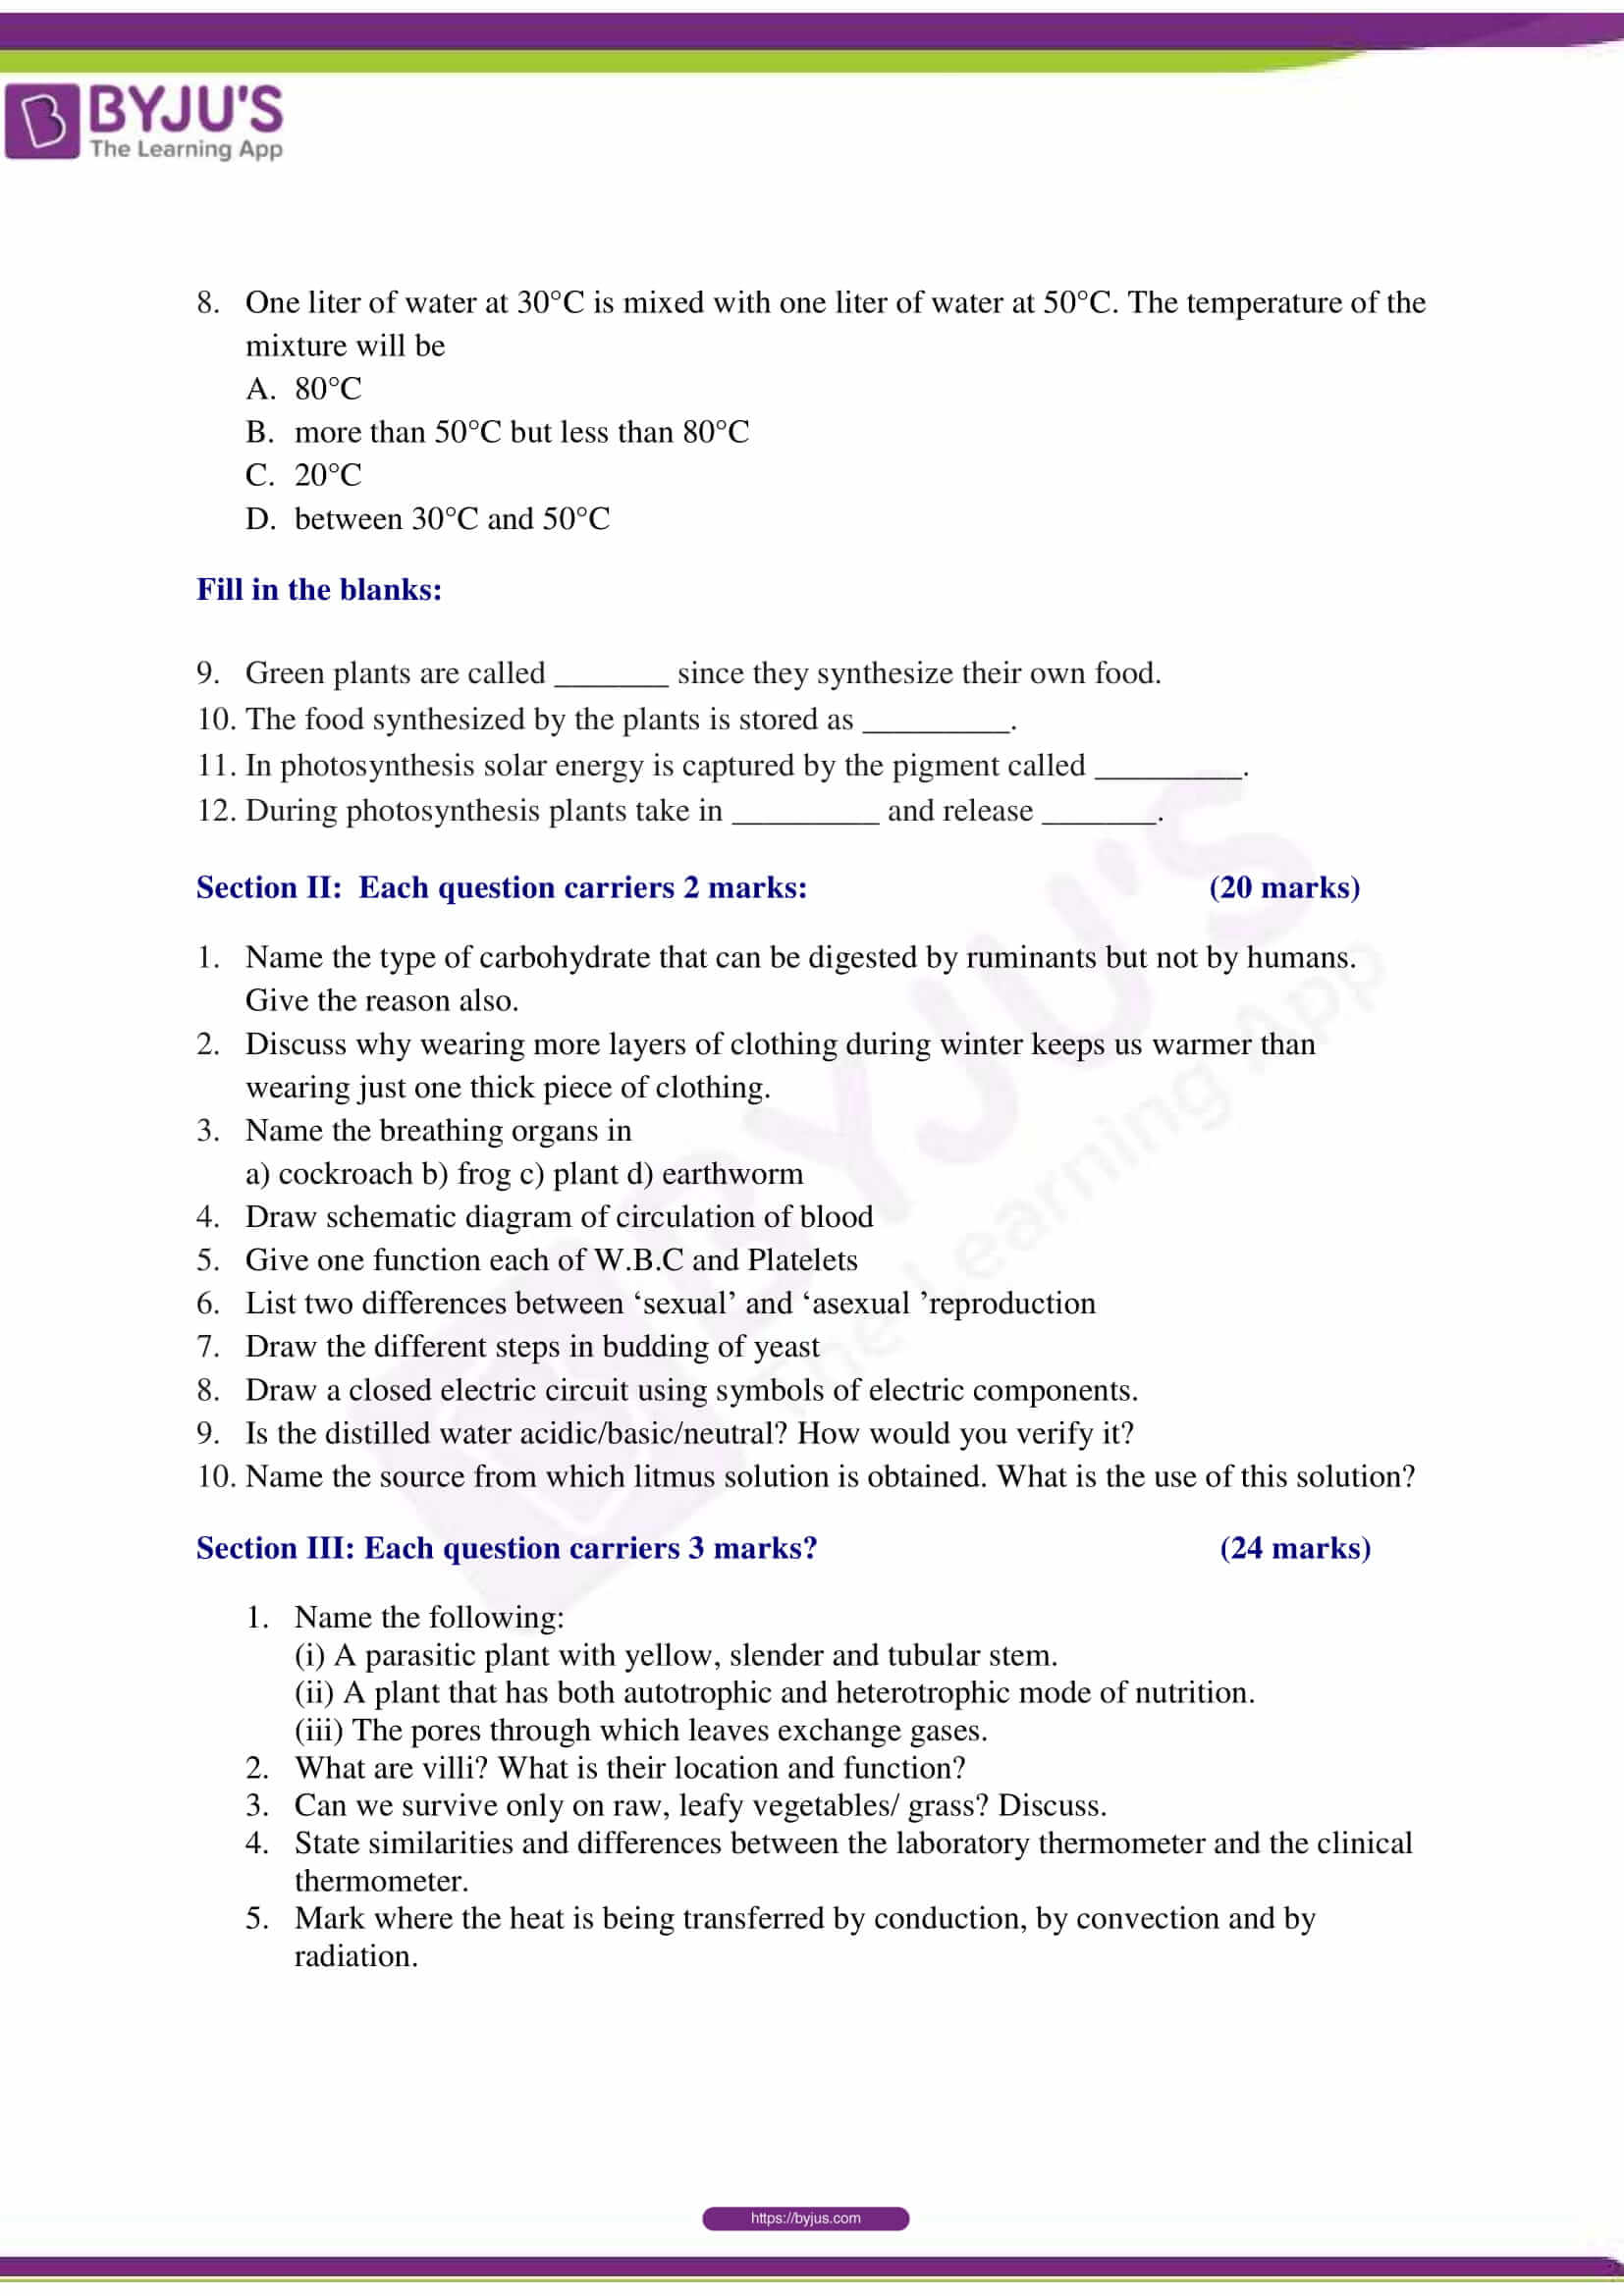 cbse sample paper class 7 science set 2